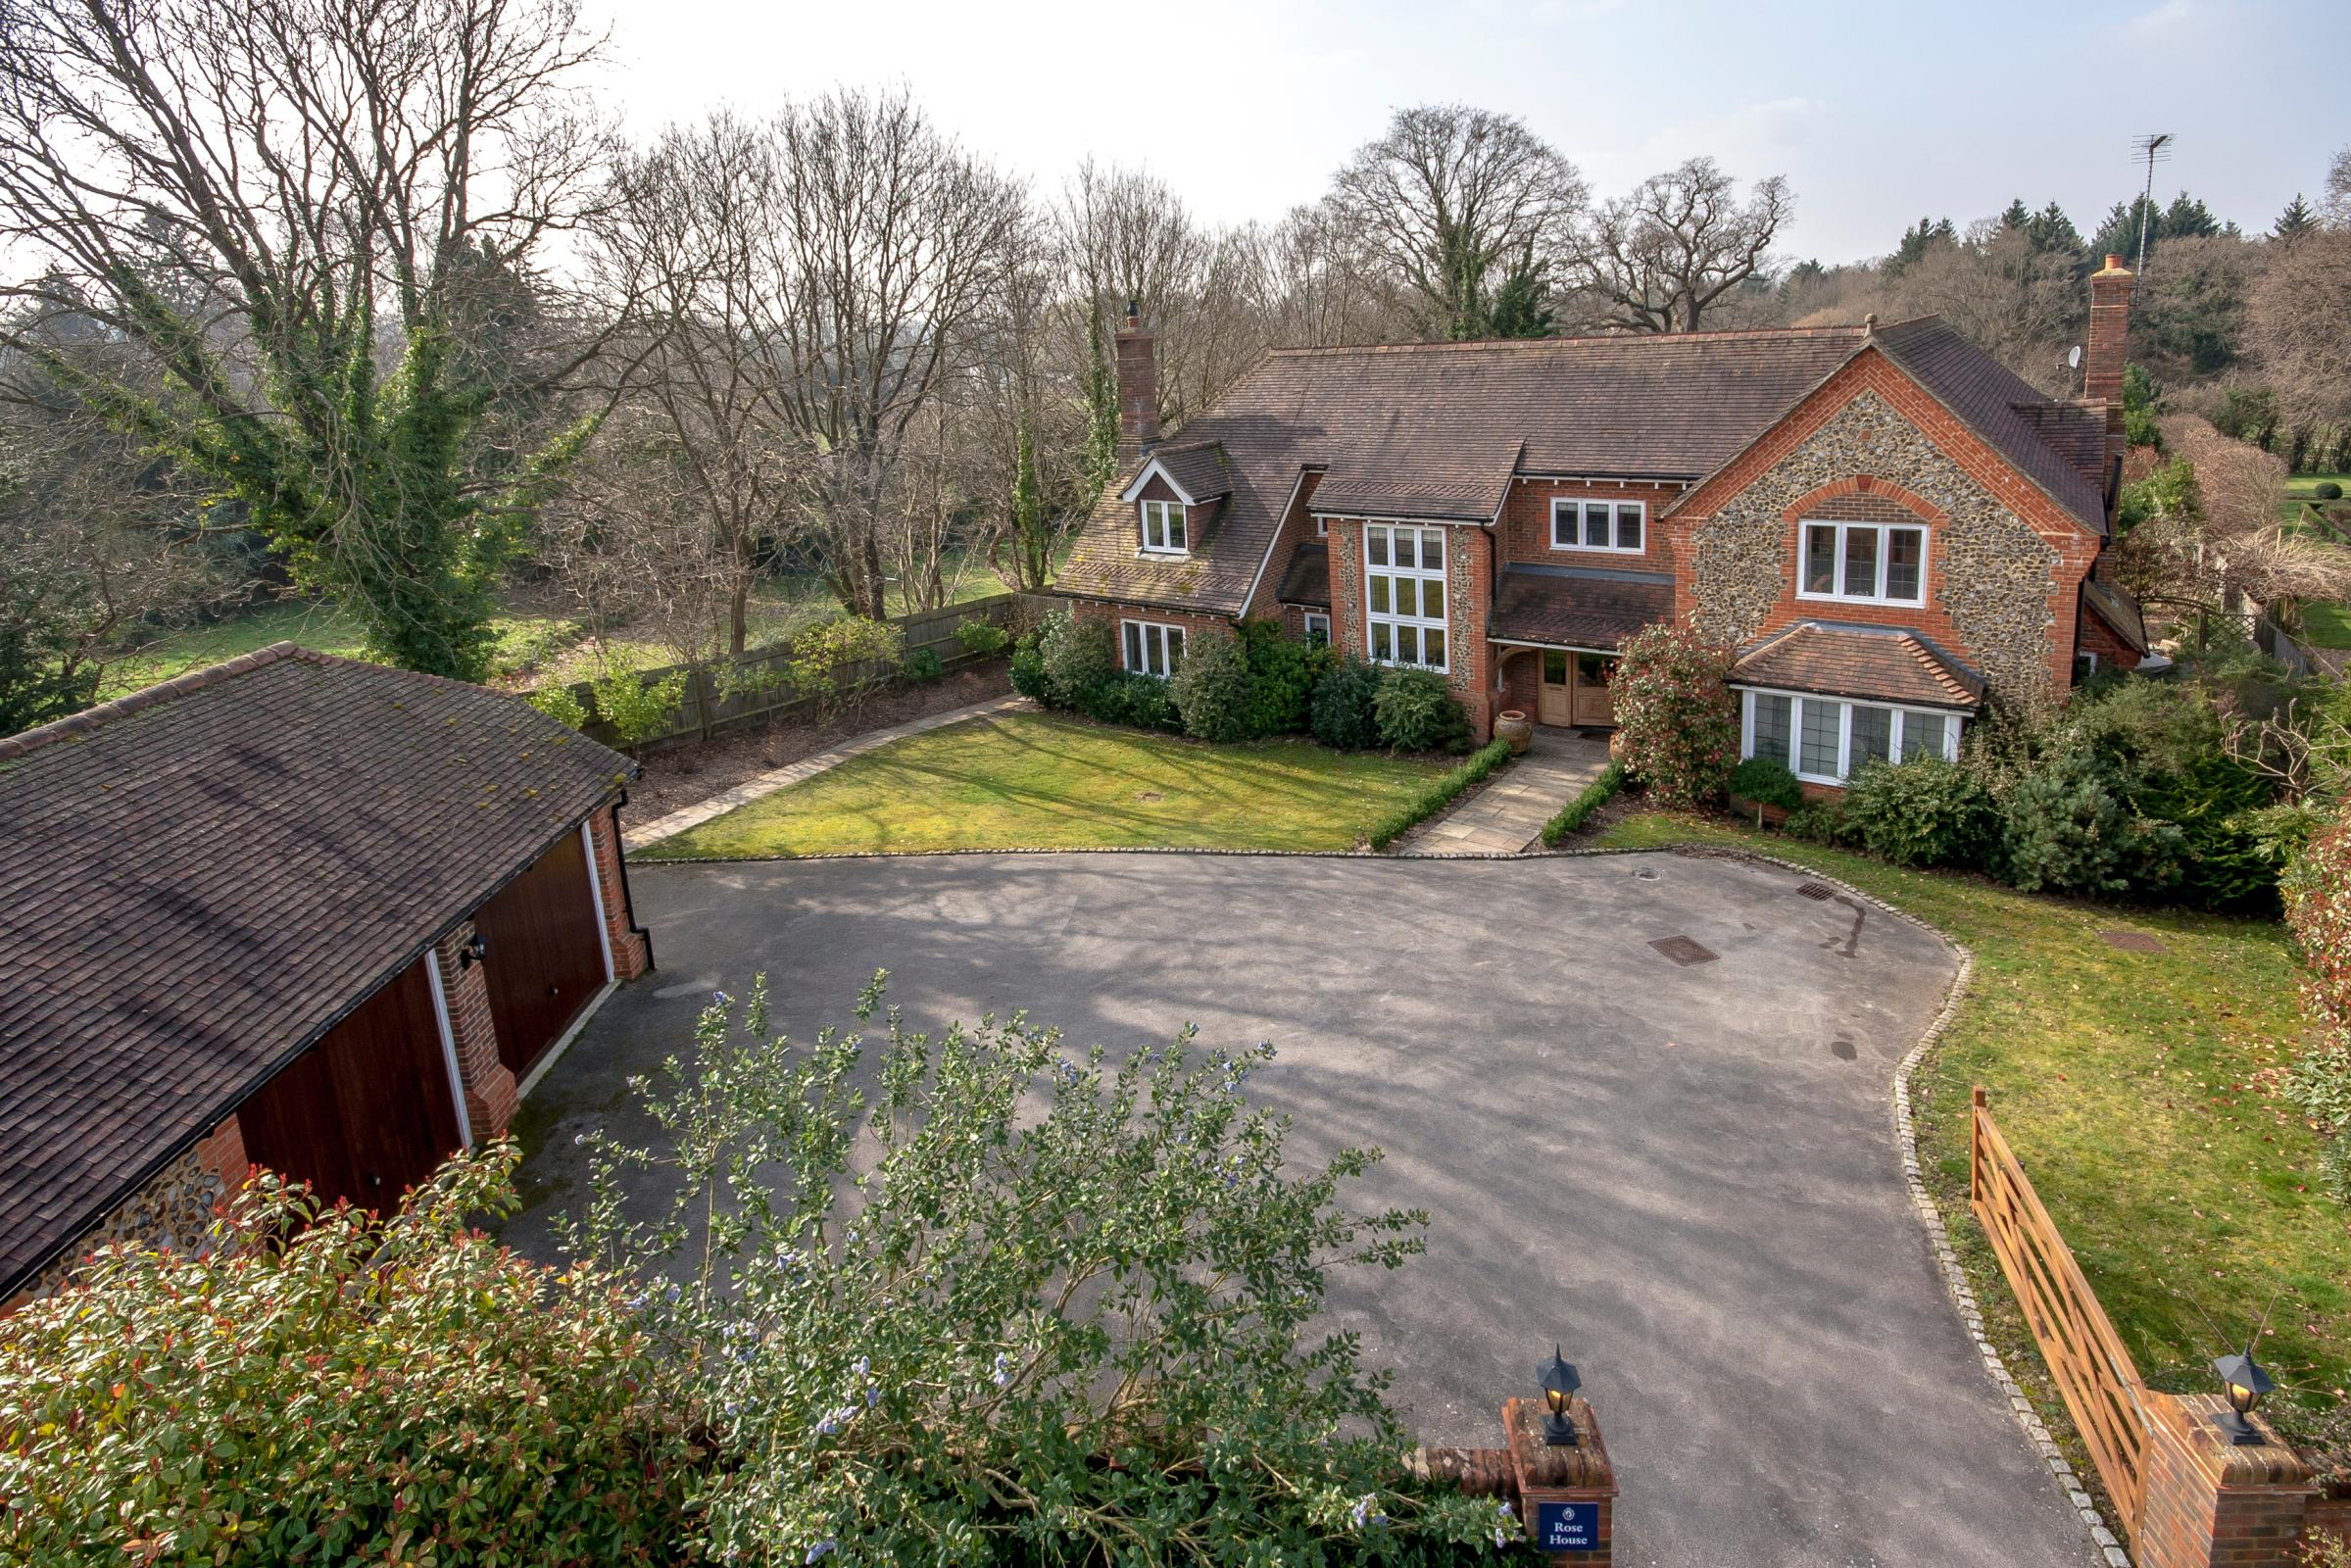 5 Bedrooms Detached House for sale in Perry Hill, Worplesdon, Surrey, GU3